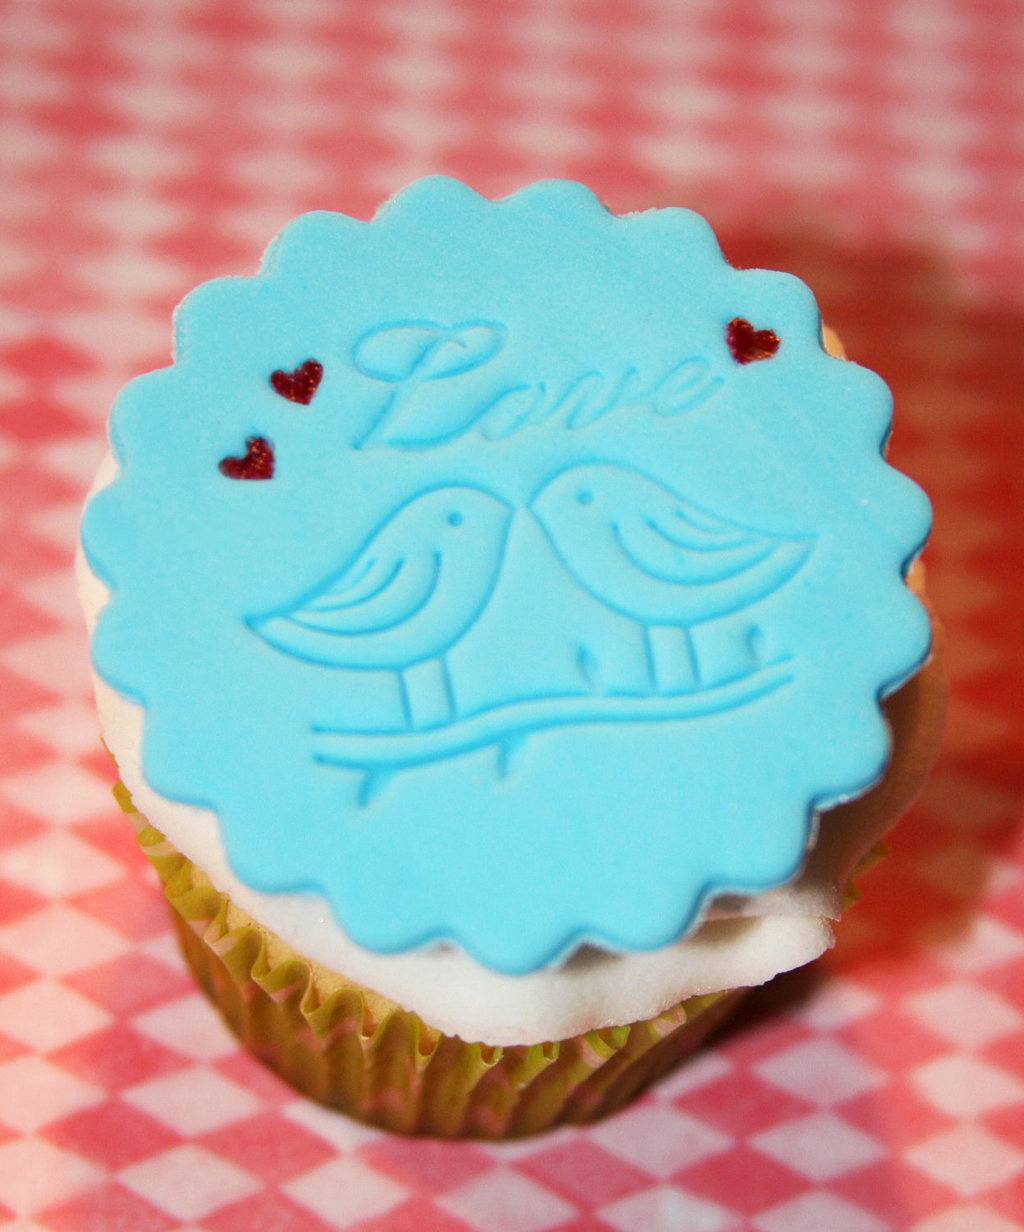 Fondant-wedding-finds-to-add-sweetness-to-handmade-weddings-love-birds.full